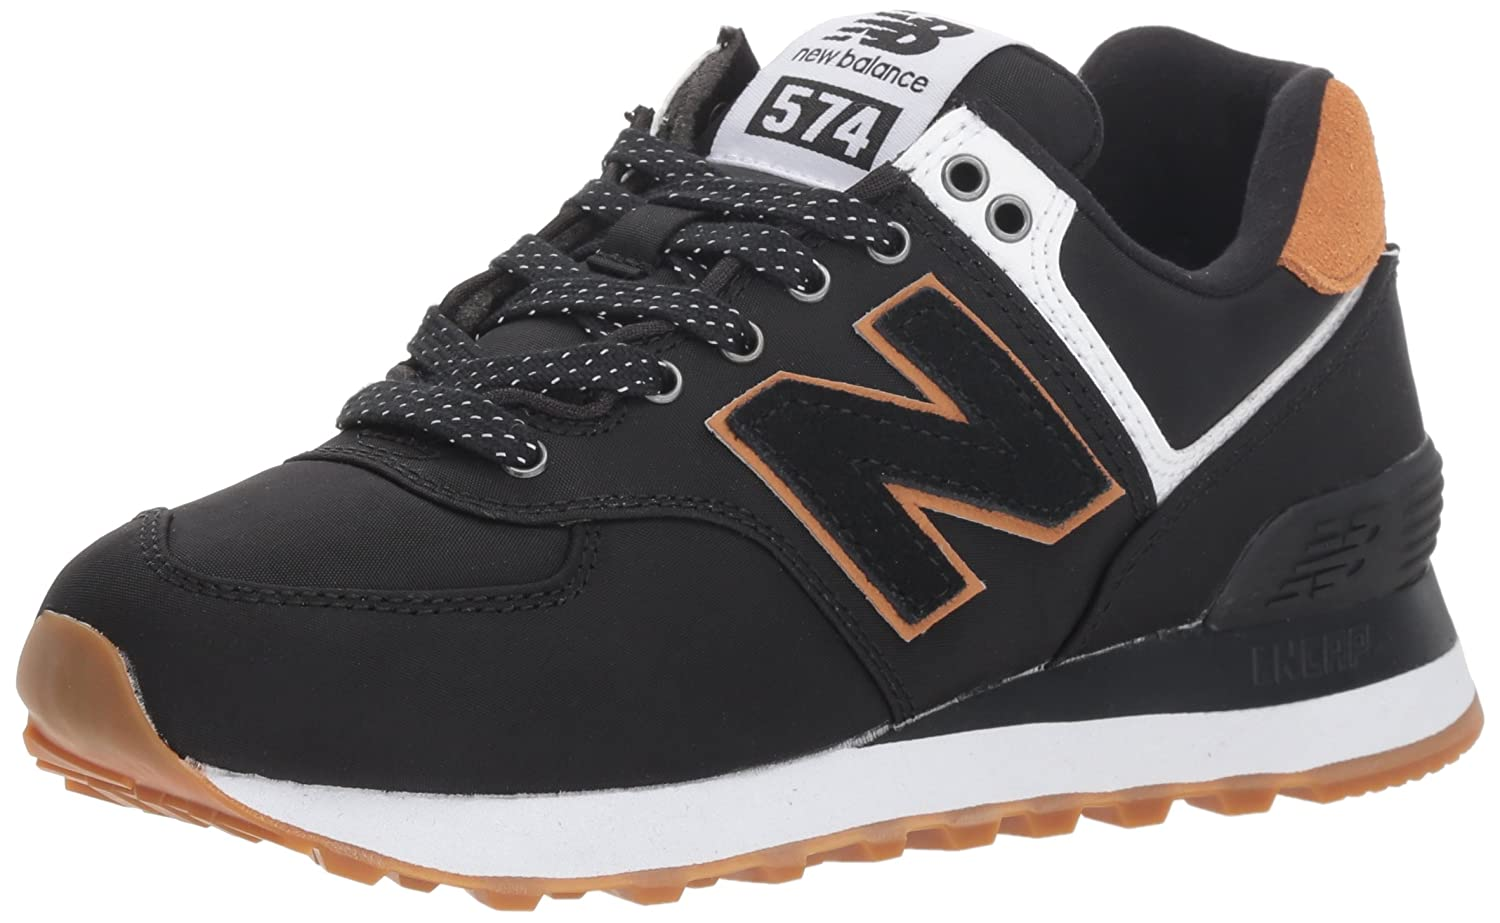 New Balance Women's 574v2 Sneaker B075R81H6R 7.5 D US|Black